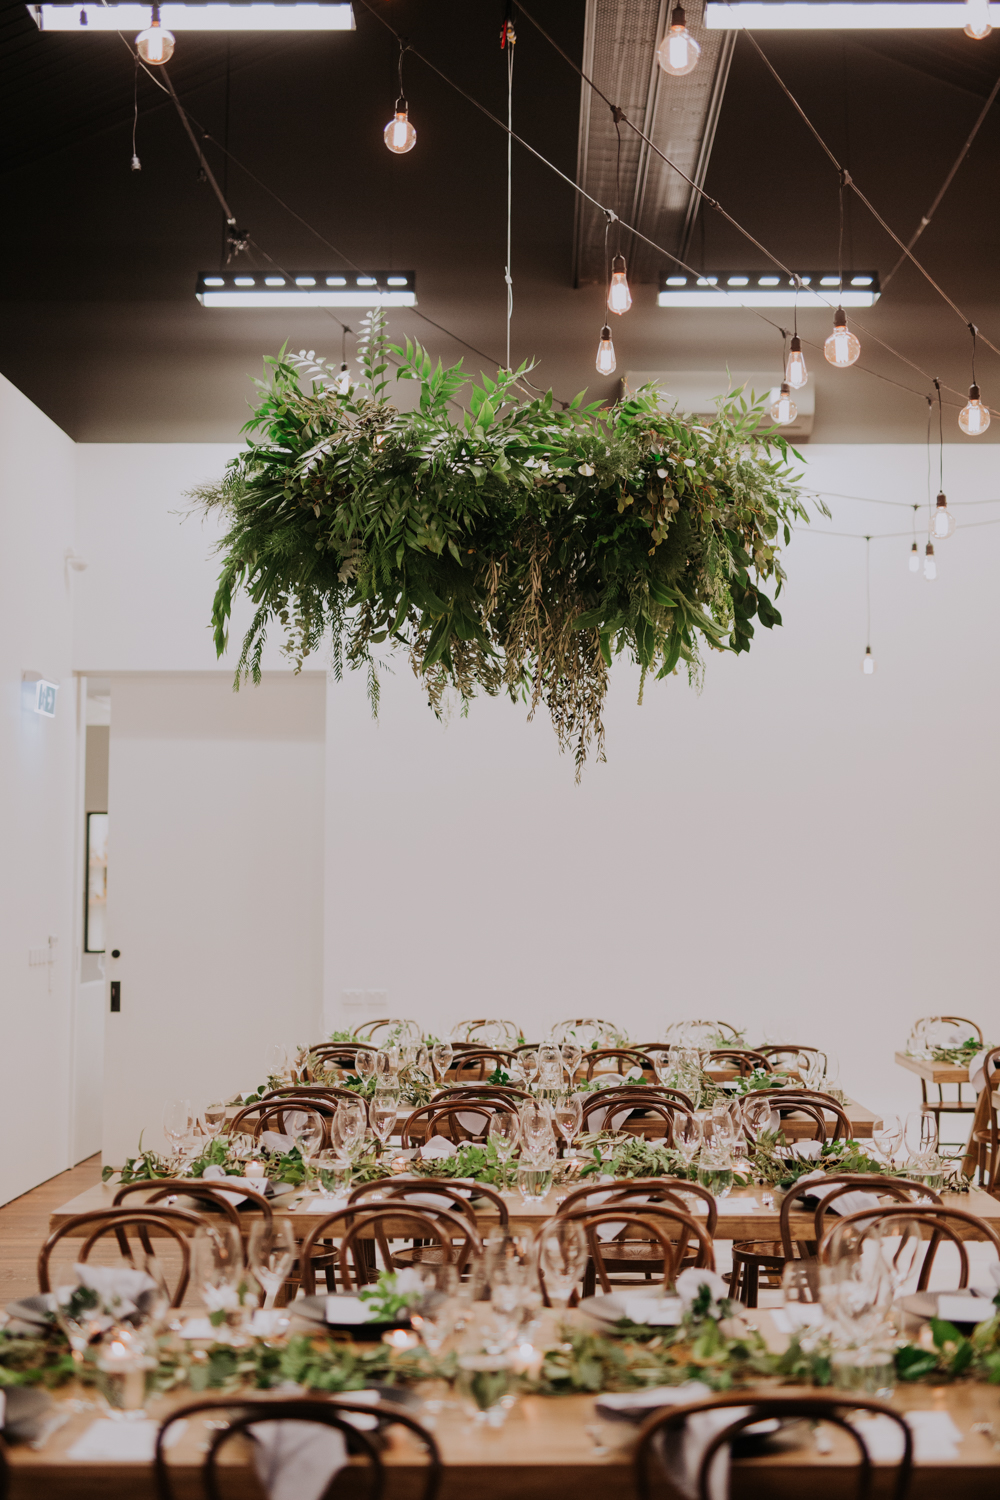 white+white weddings and events carrie and jay real wedding styling bentwood chairs banquet tables timber rustic studio warehouse venue hanging foliage